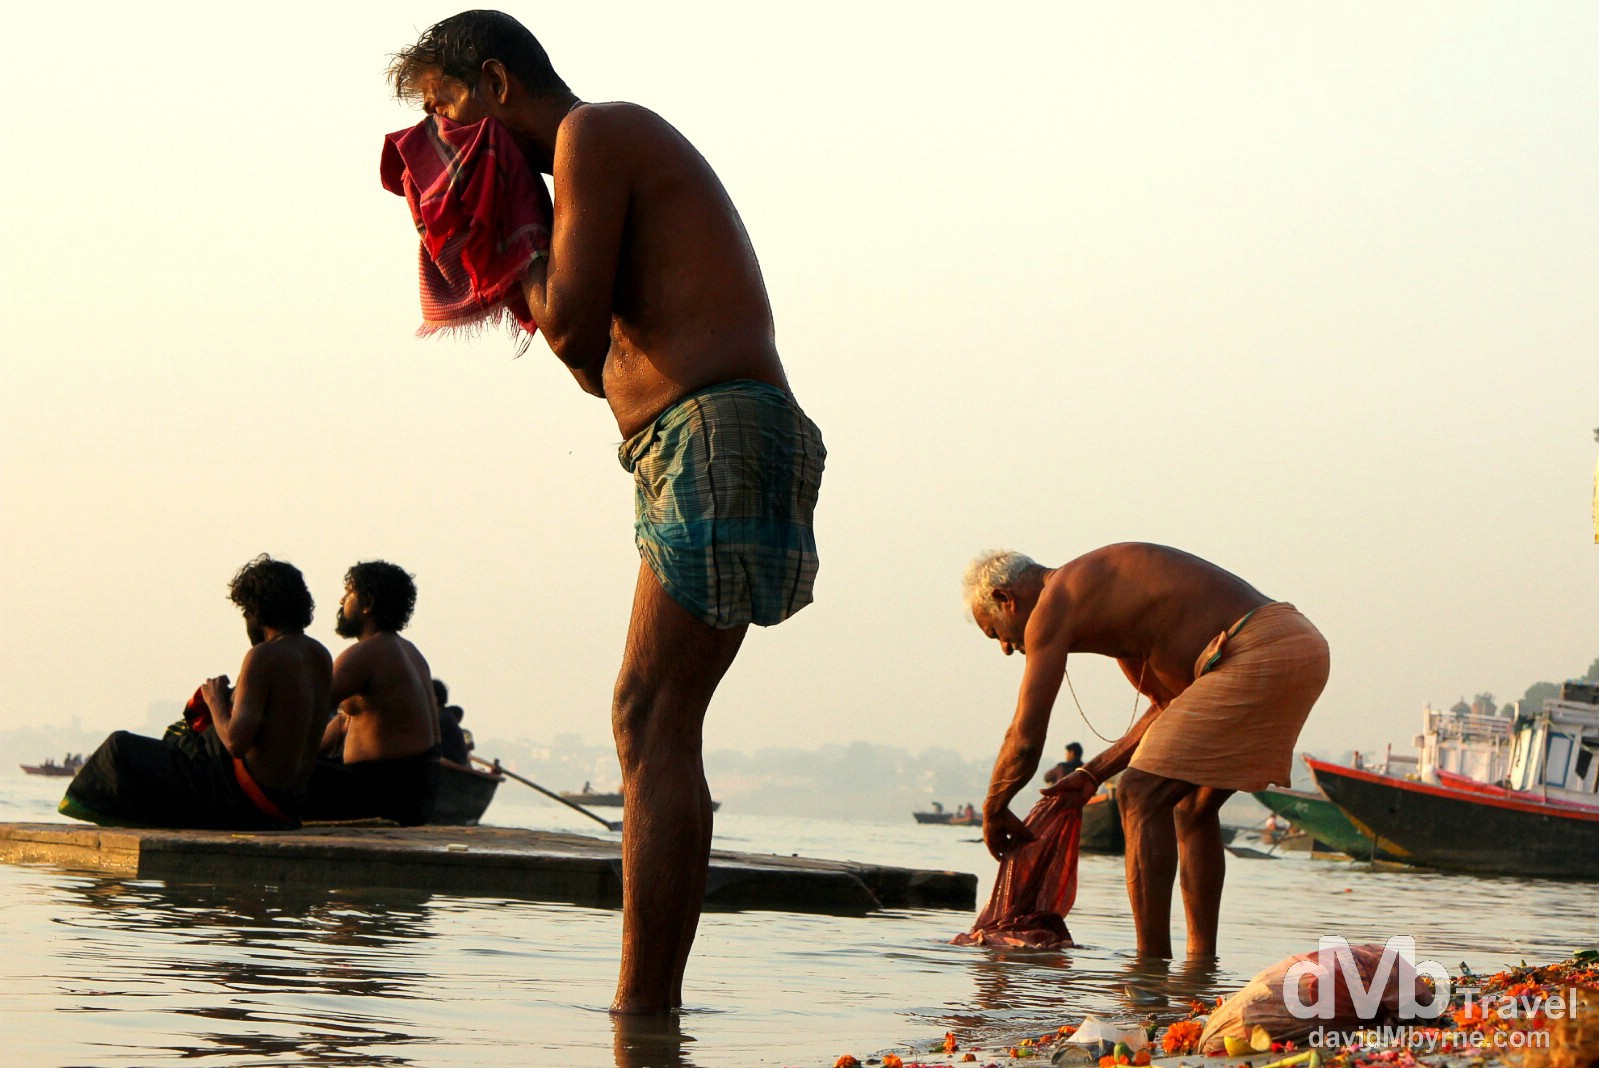 Sunrise bathing in the River Ganges, Varanasi, Uttar Pradesh, India. October 13th 2012.